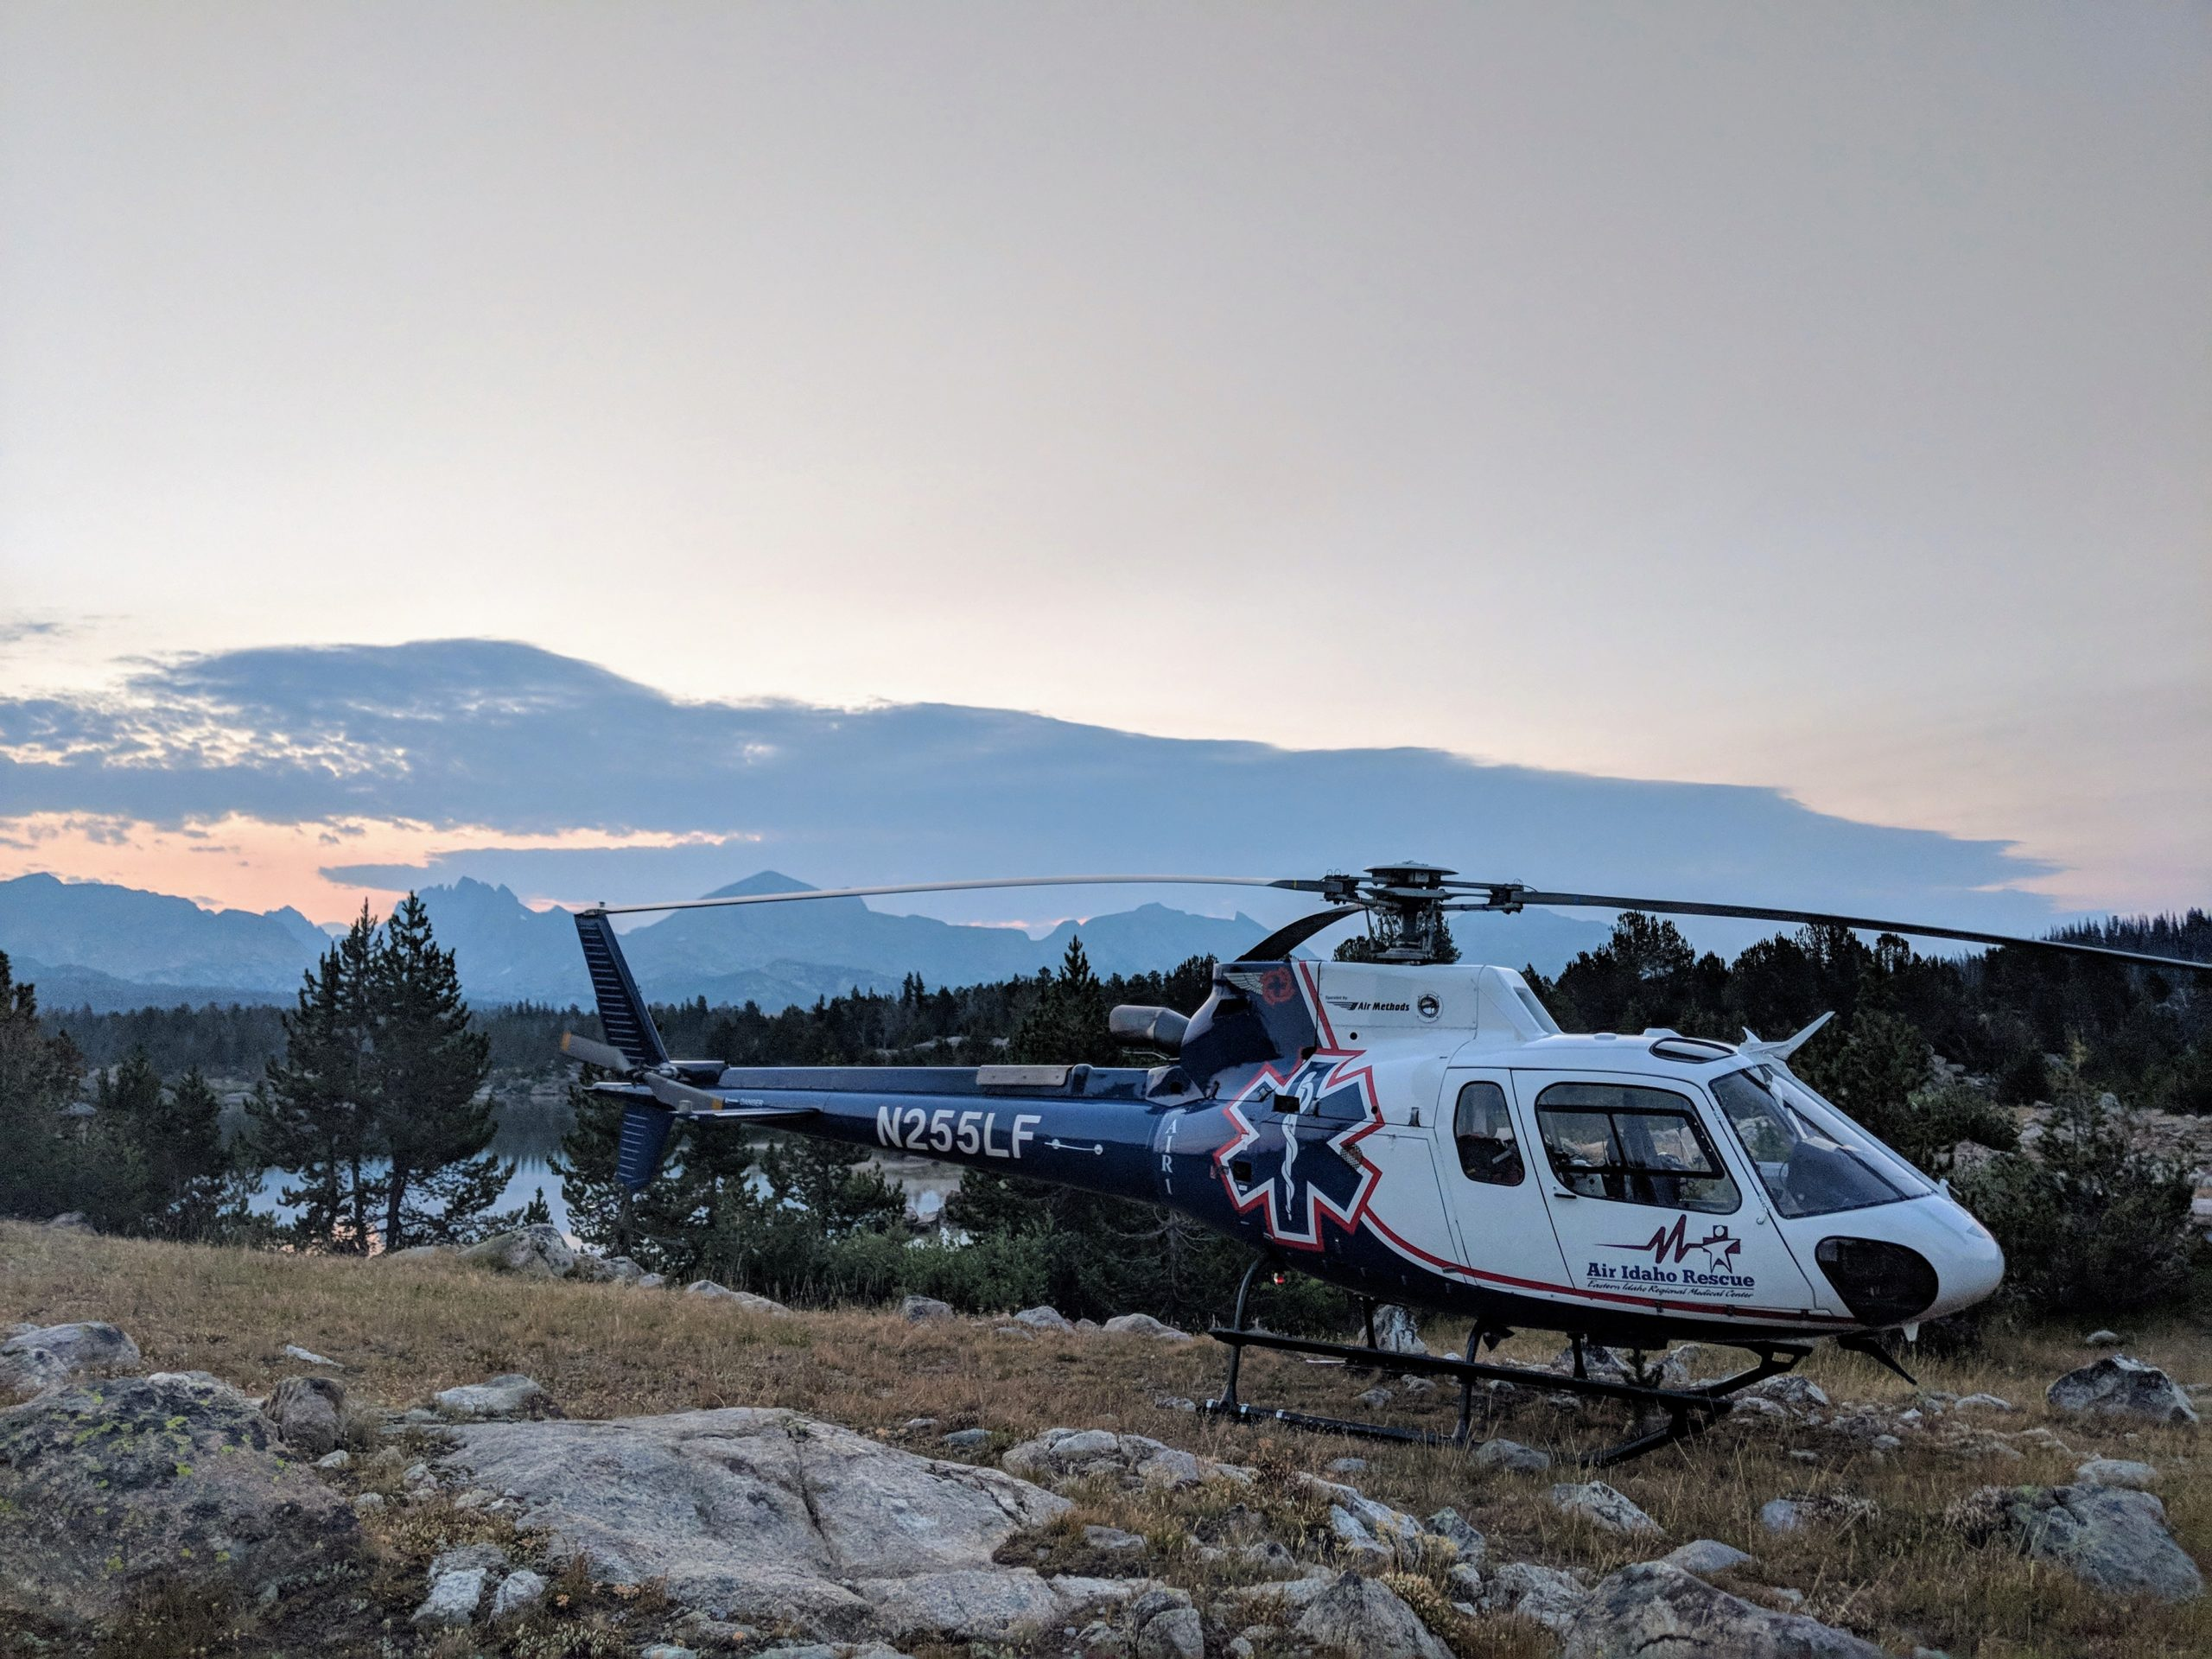 Air Idaho helicopter landed on mountain.